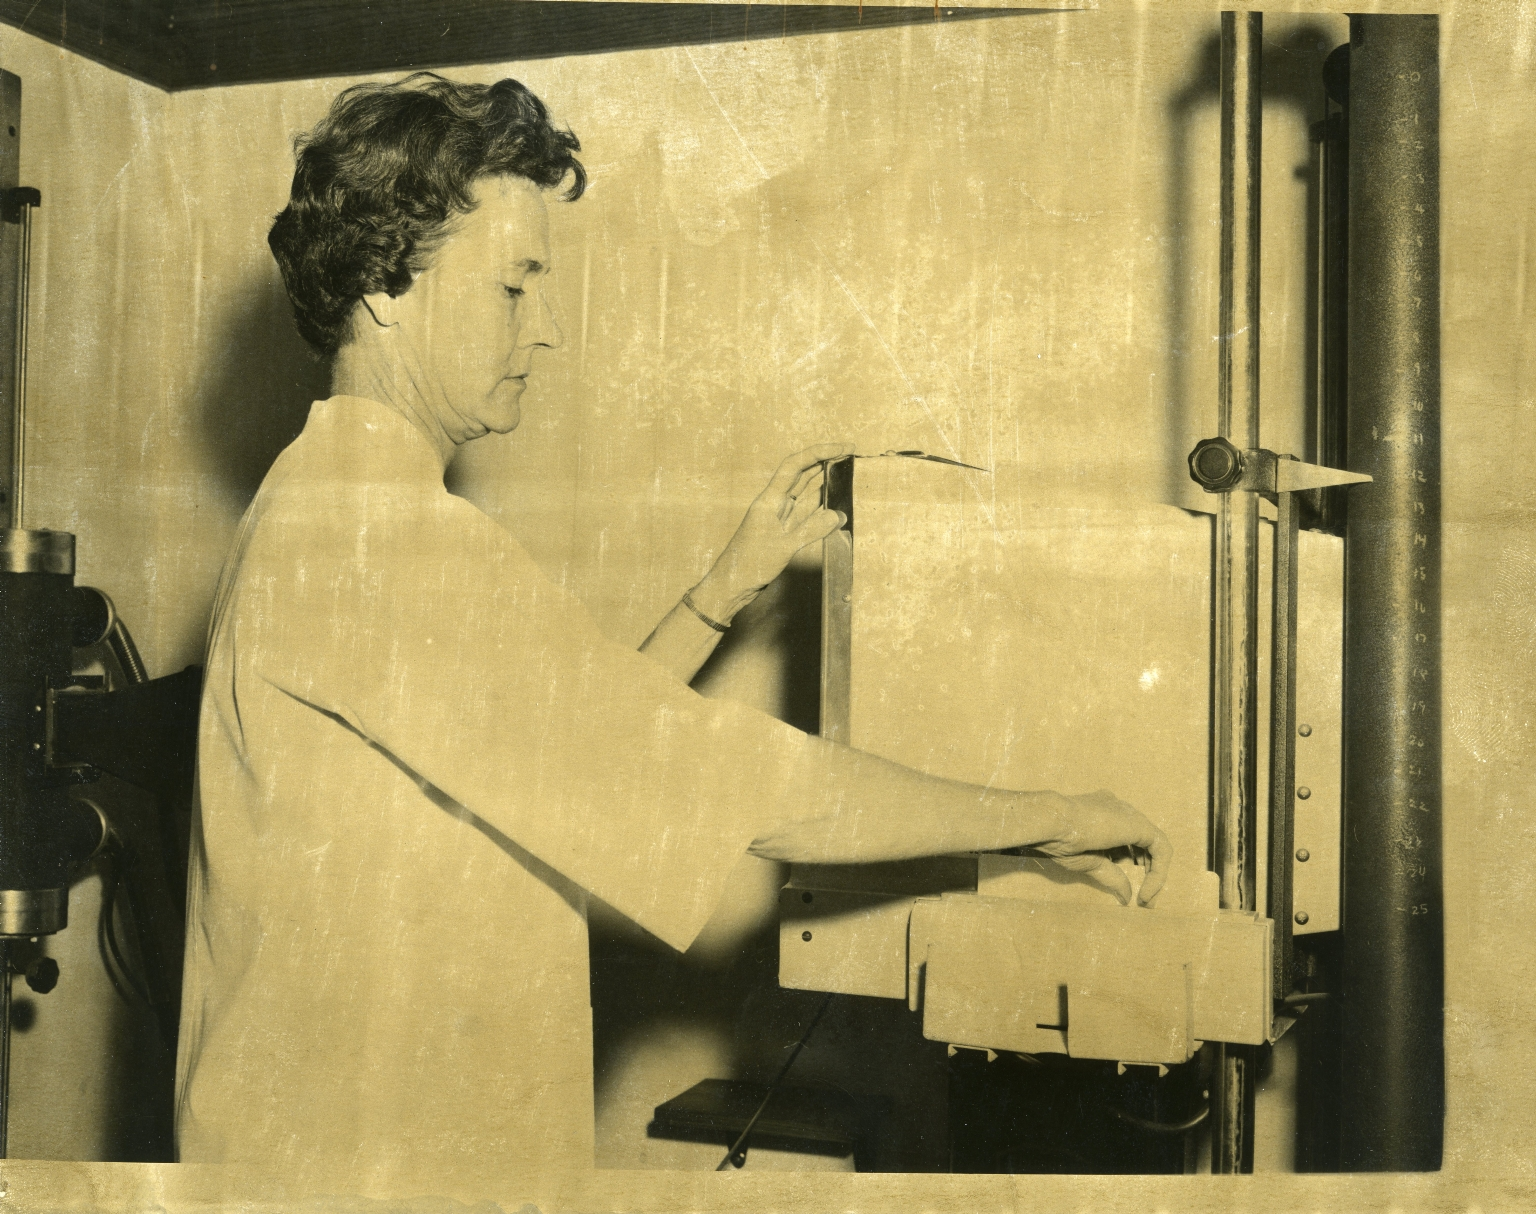 McCracken County Health Department Staff with X-Ray Equipment